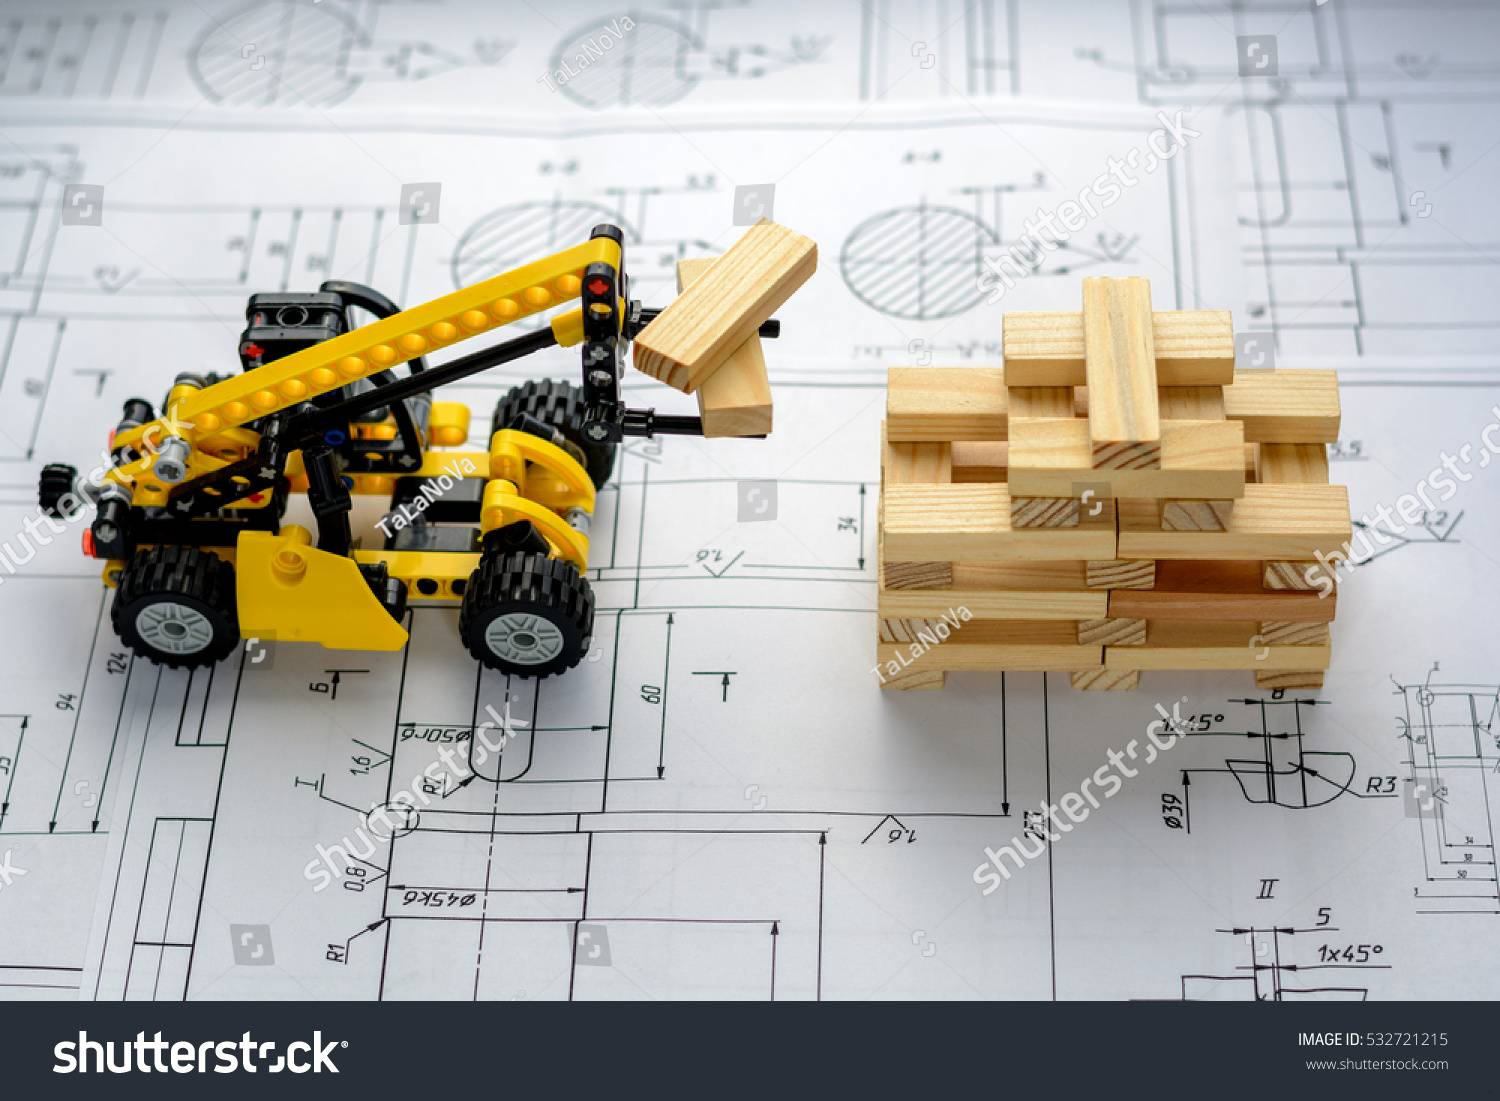 stock-photo-blueprint-wooden-block-tower-planning-risk-and-strategy-in-business-or-architectural-project-532721215.jpg